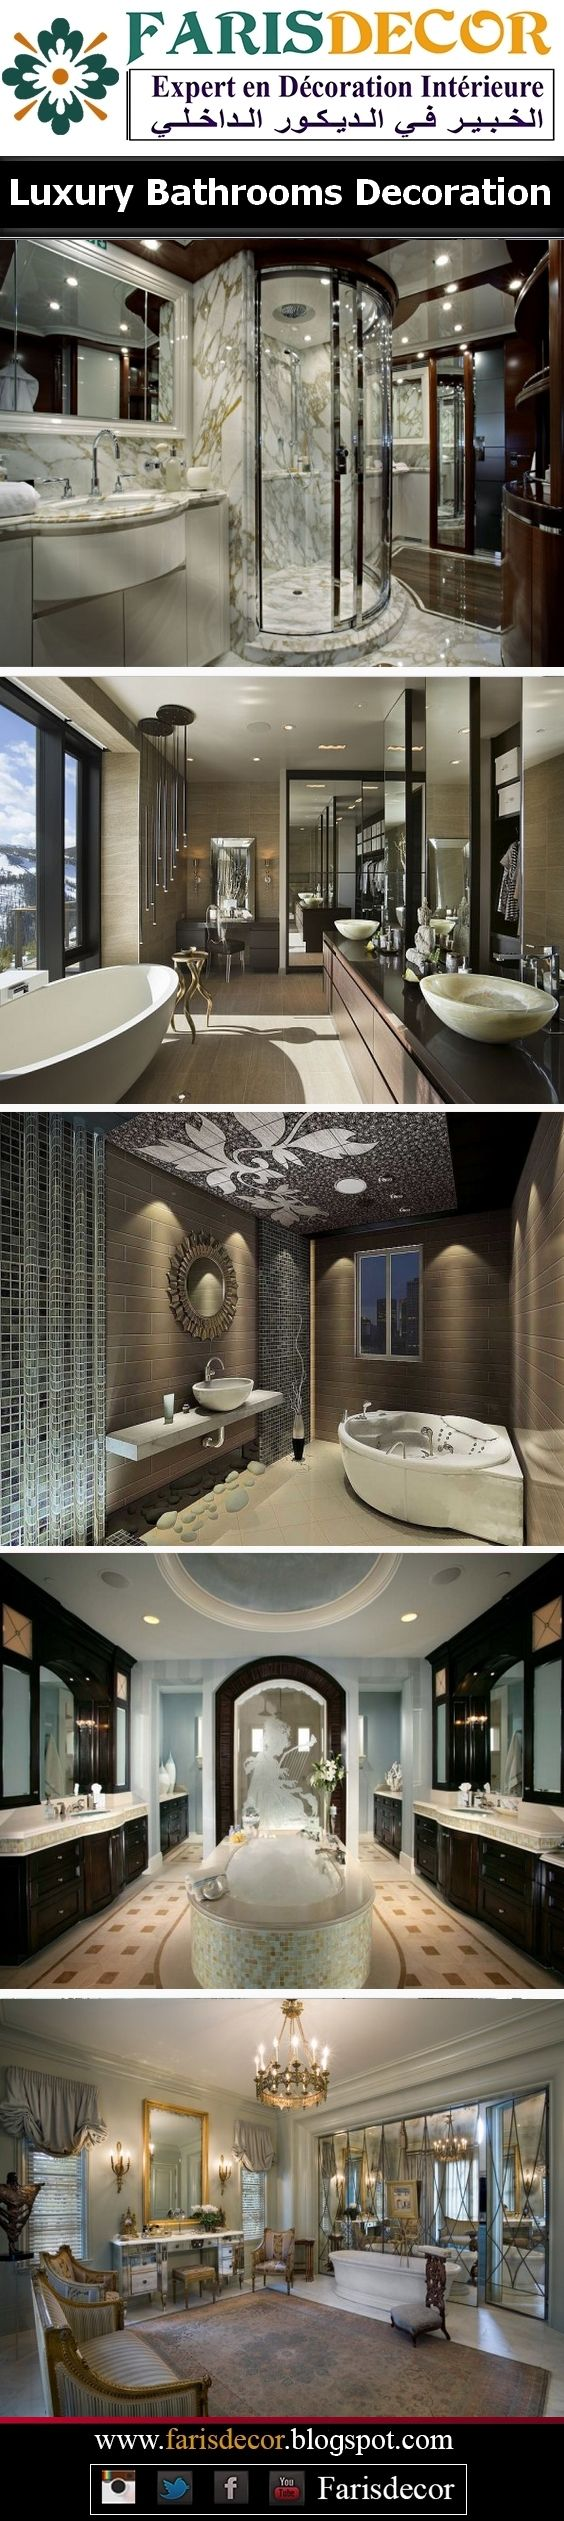 Luxury Bathrooms Decoration #Décoration #Architecture #House #Mobilier #Jardinage #Moderne #Floors #Ceiling #Wall #Afrique #Europe #Casablanca #Maroc #Morocco